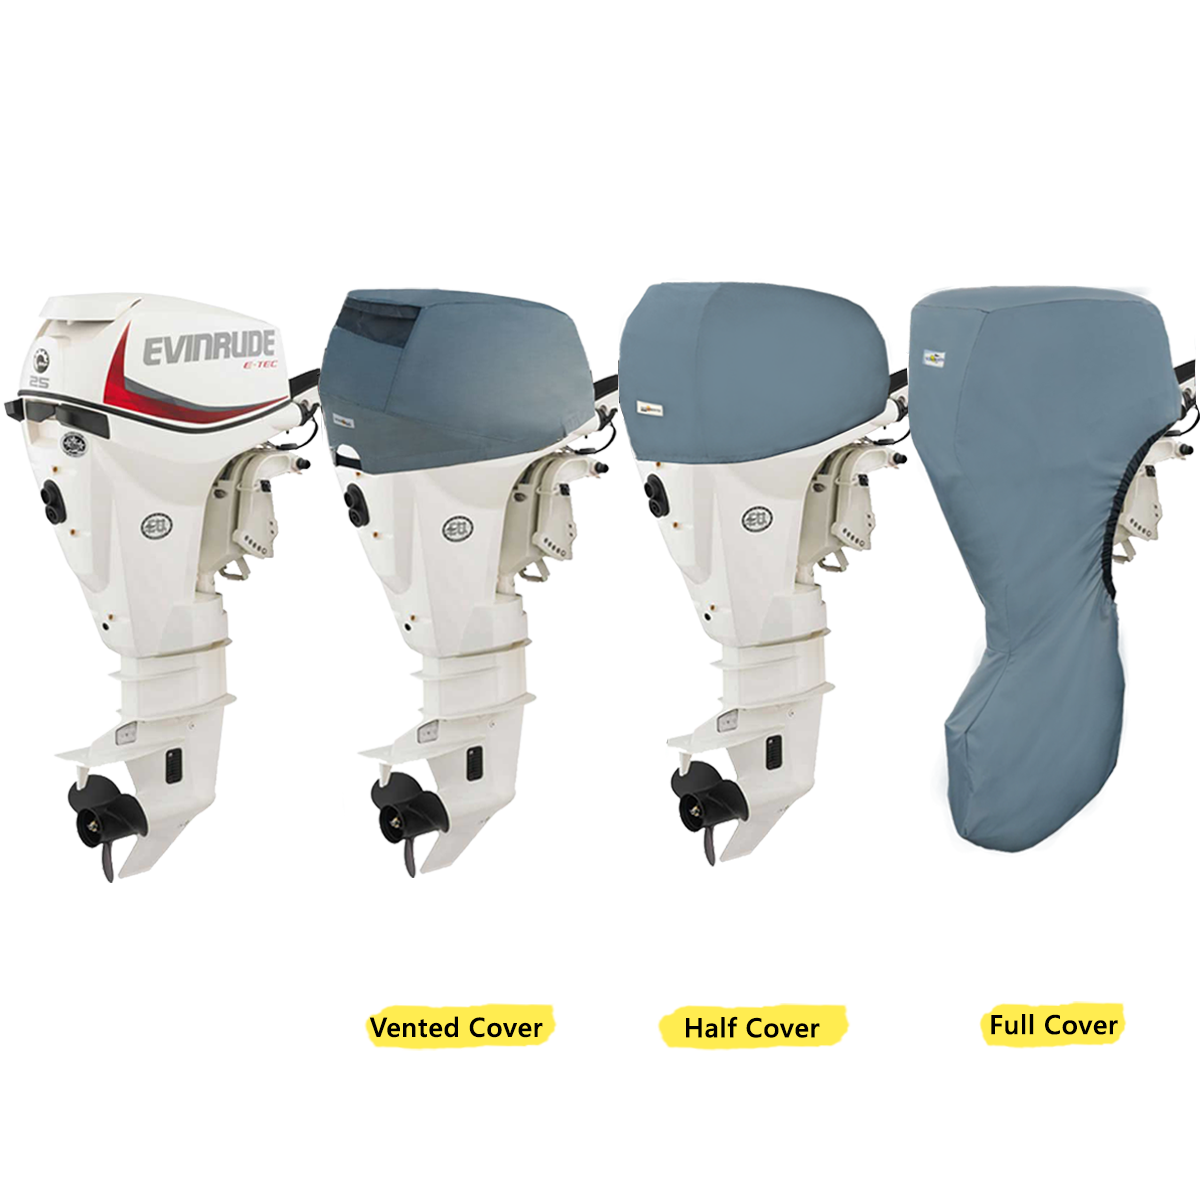 Covers for Evinrude Outboard Motors